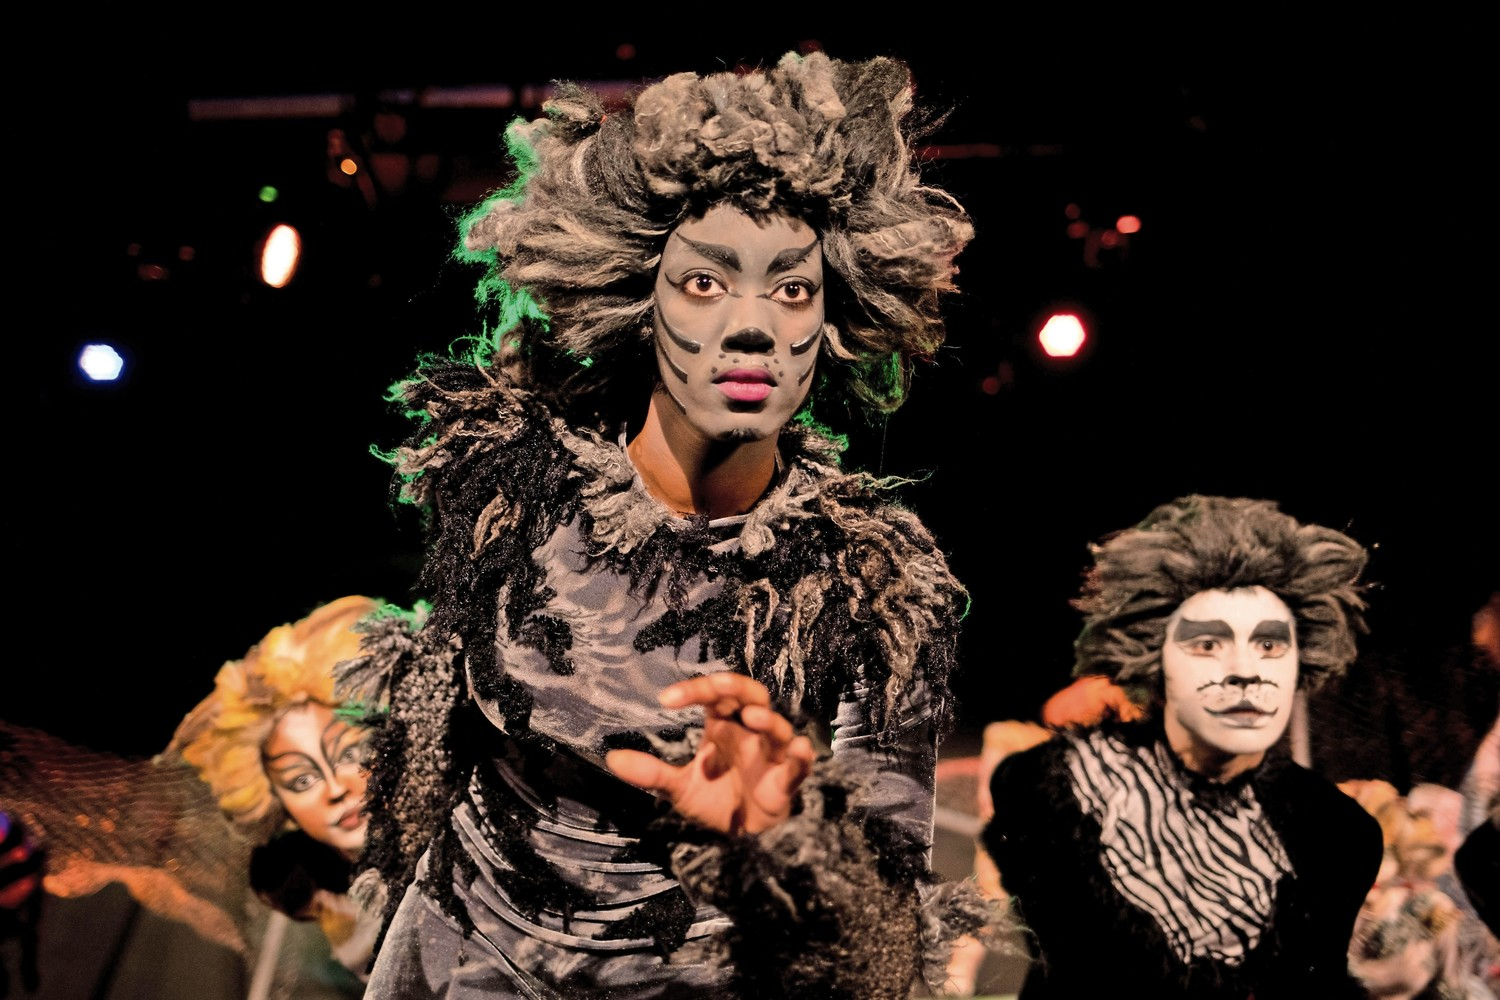 The Riverdale Children's Theater will perform the Andrew Lloyd Weber musical 'Cats' at the College of Mount Saint Vincent on June 7, 8 and 10.